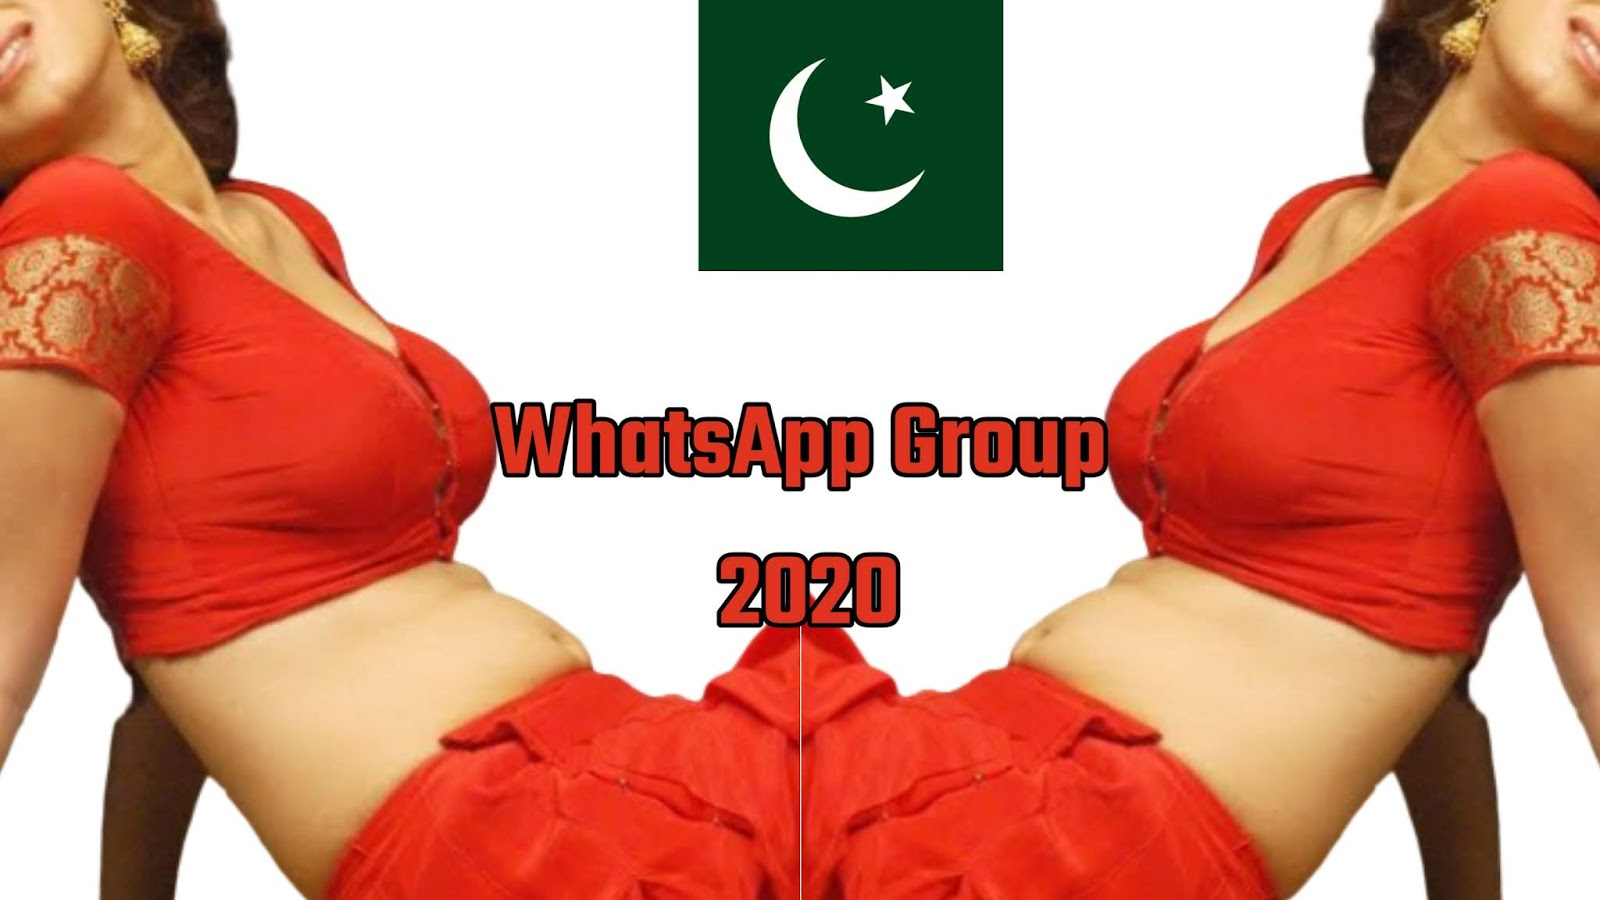 Whatsapp Group Link Pakistan 2020 18+ Girls, Hot Girls, Hot Videos, Xxx Girls, Sexy Girls